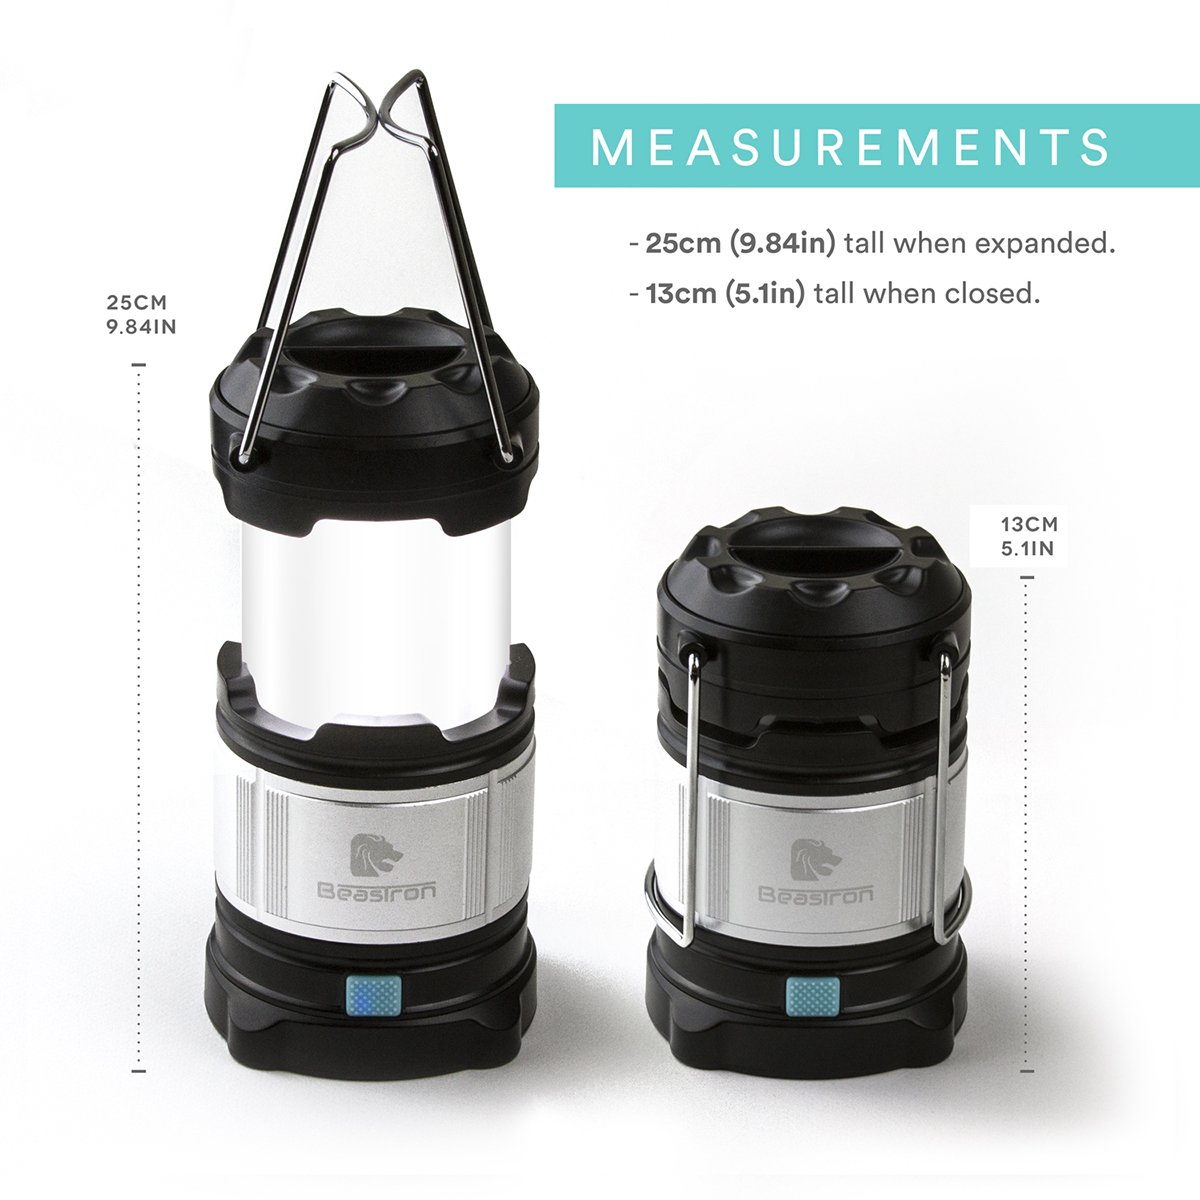 BEASTRON Rechargeable LED Camping Lantern – Water Resistant – Portable Collapsible Design for Hiking, Camping, Emergencies, Hurricanes, Outages